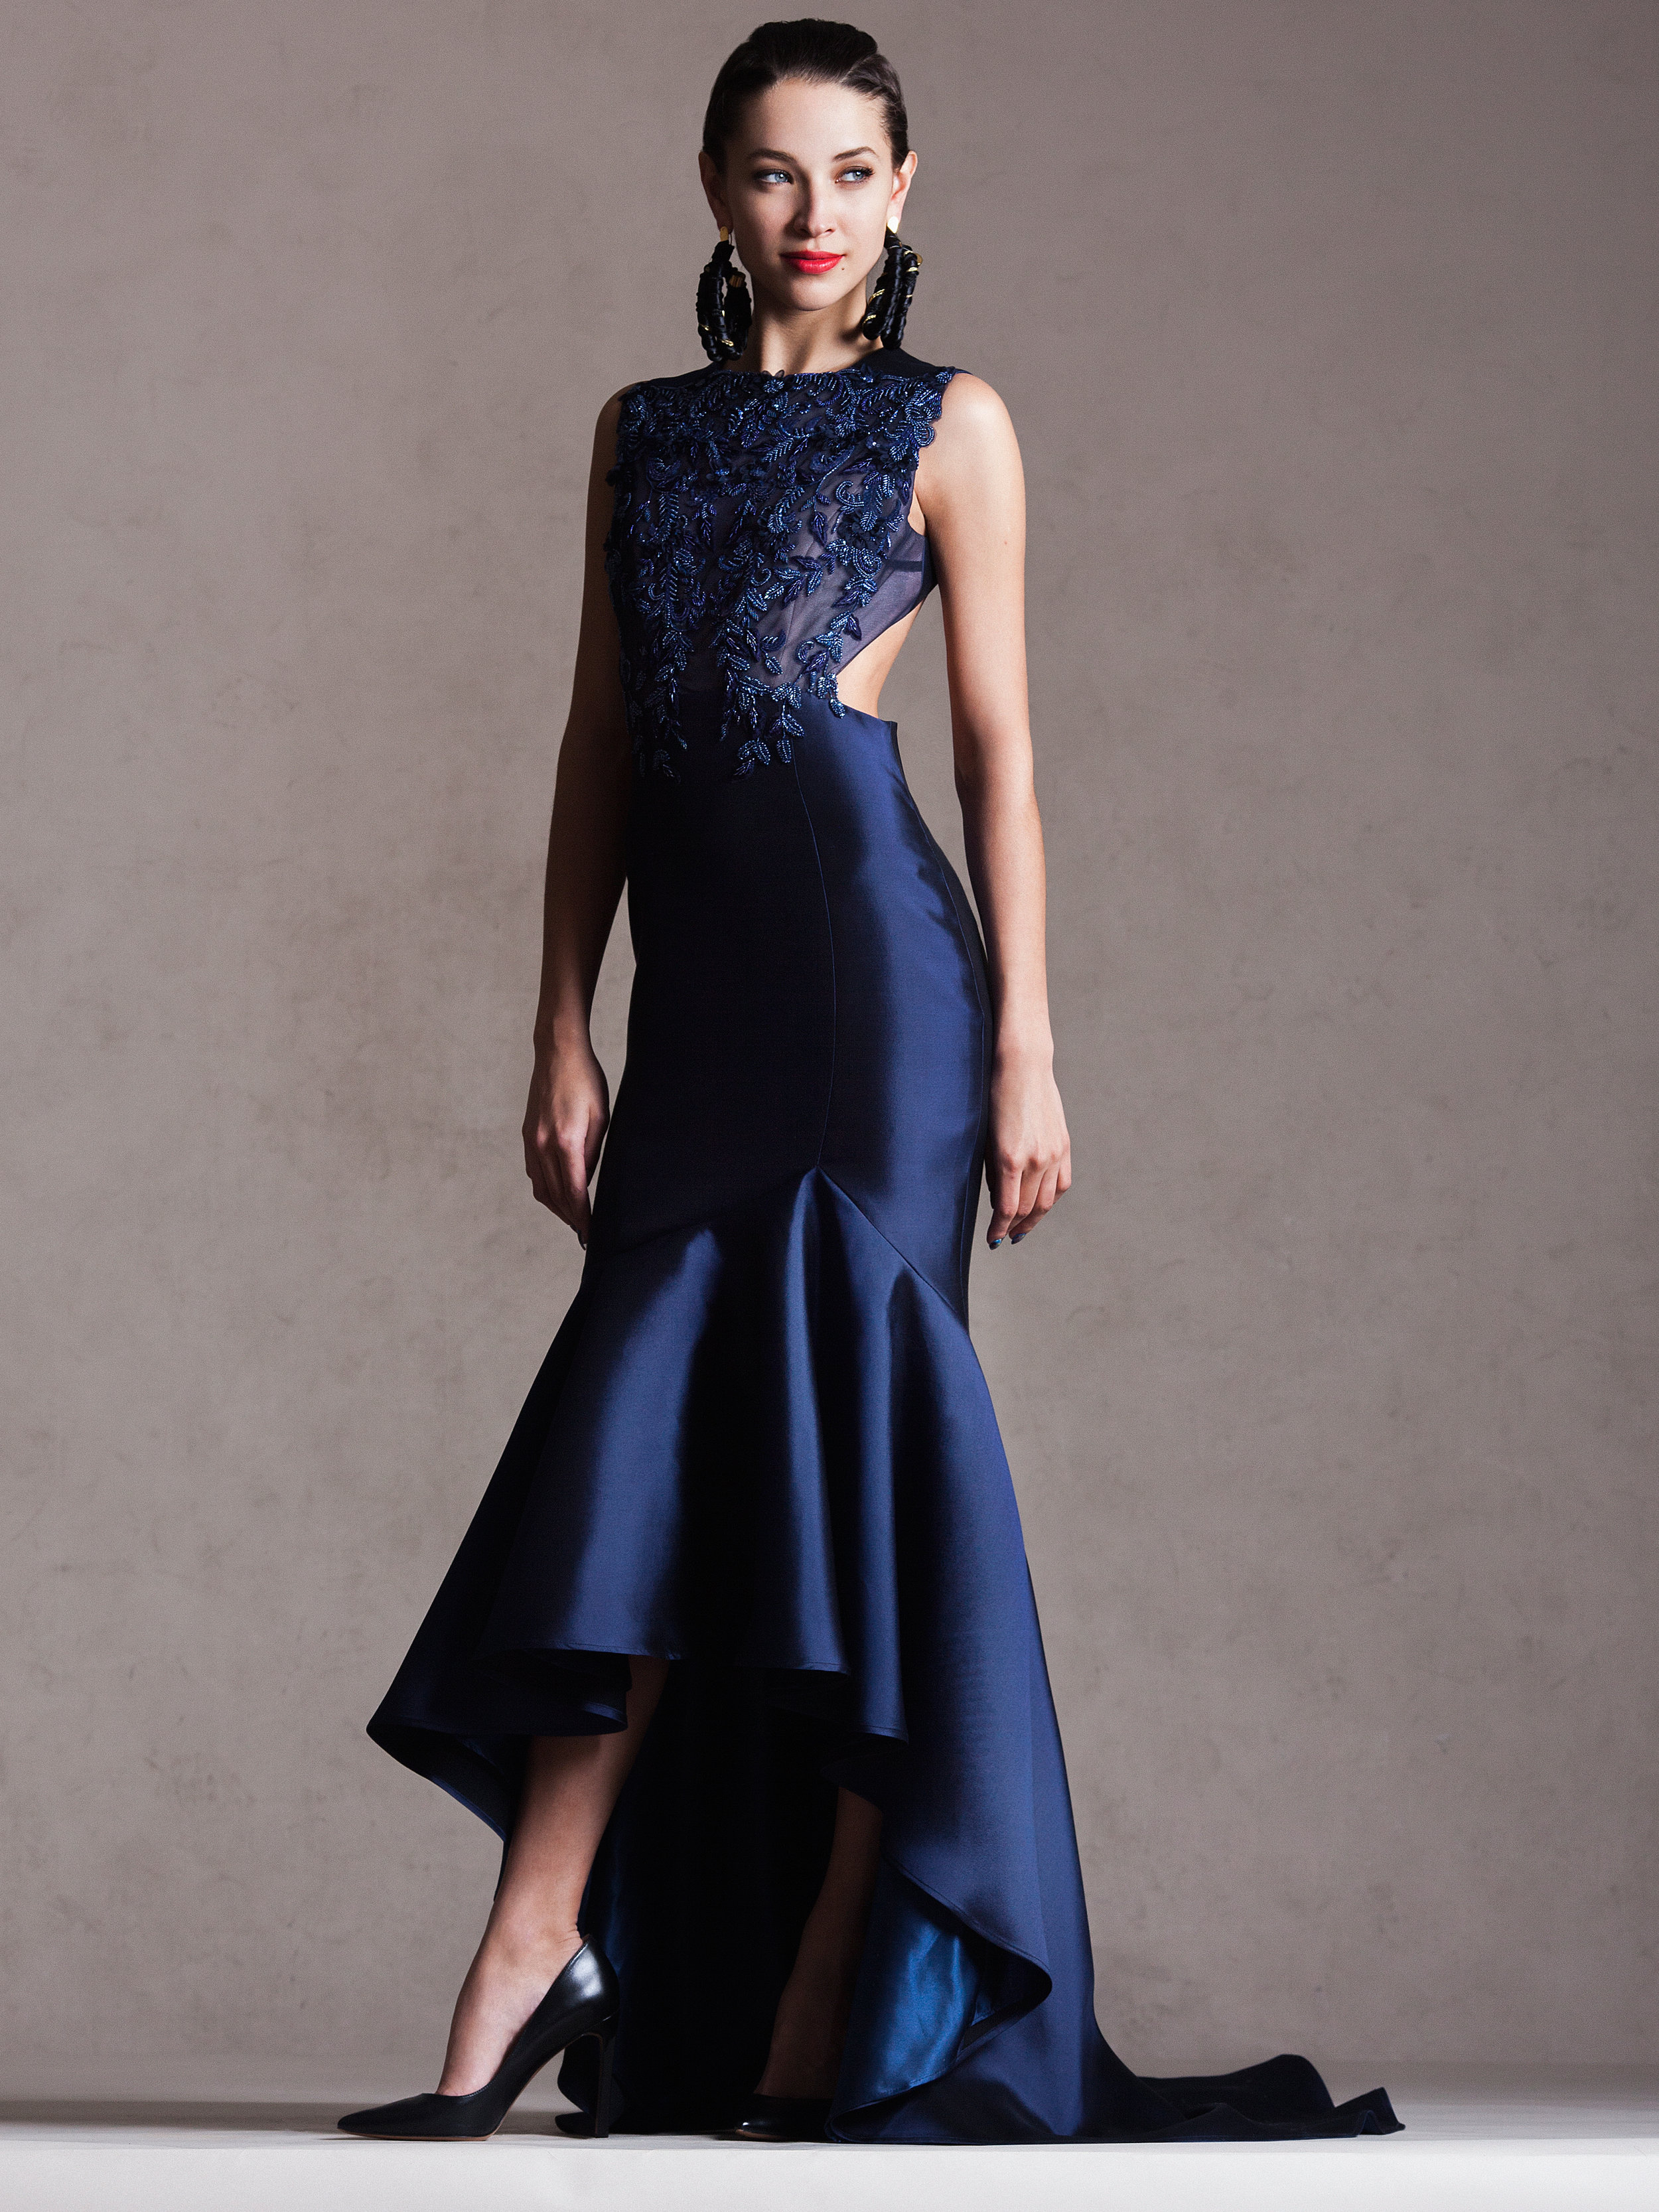 Lucian-Matis-Lookbook-20150204-012c.jpg